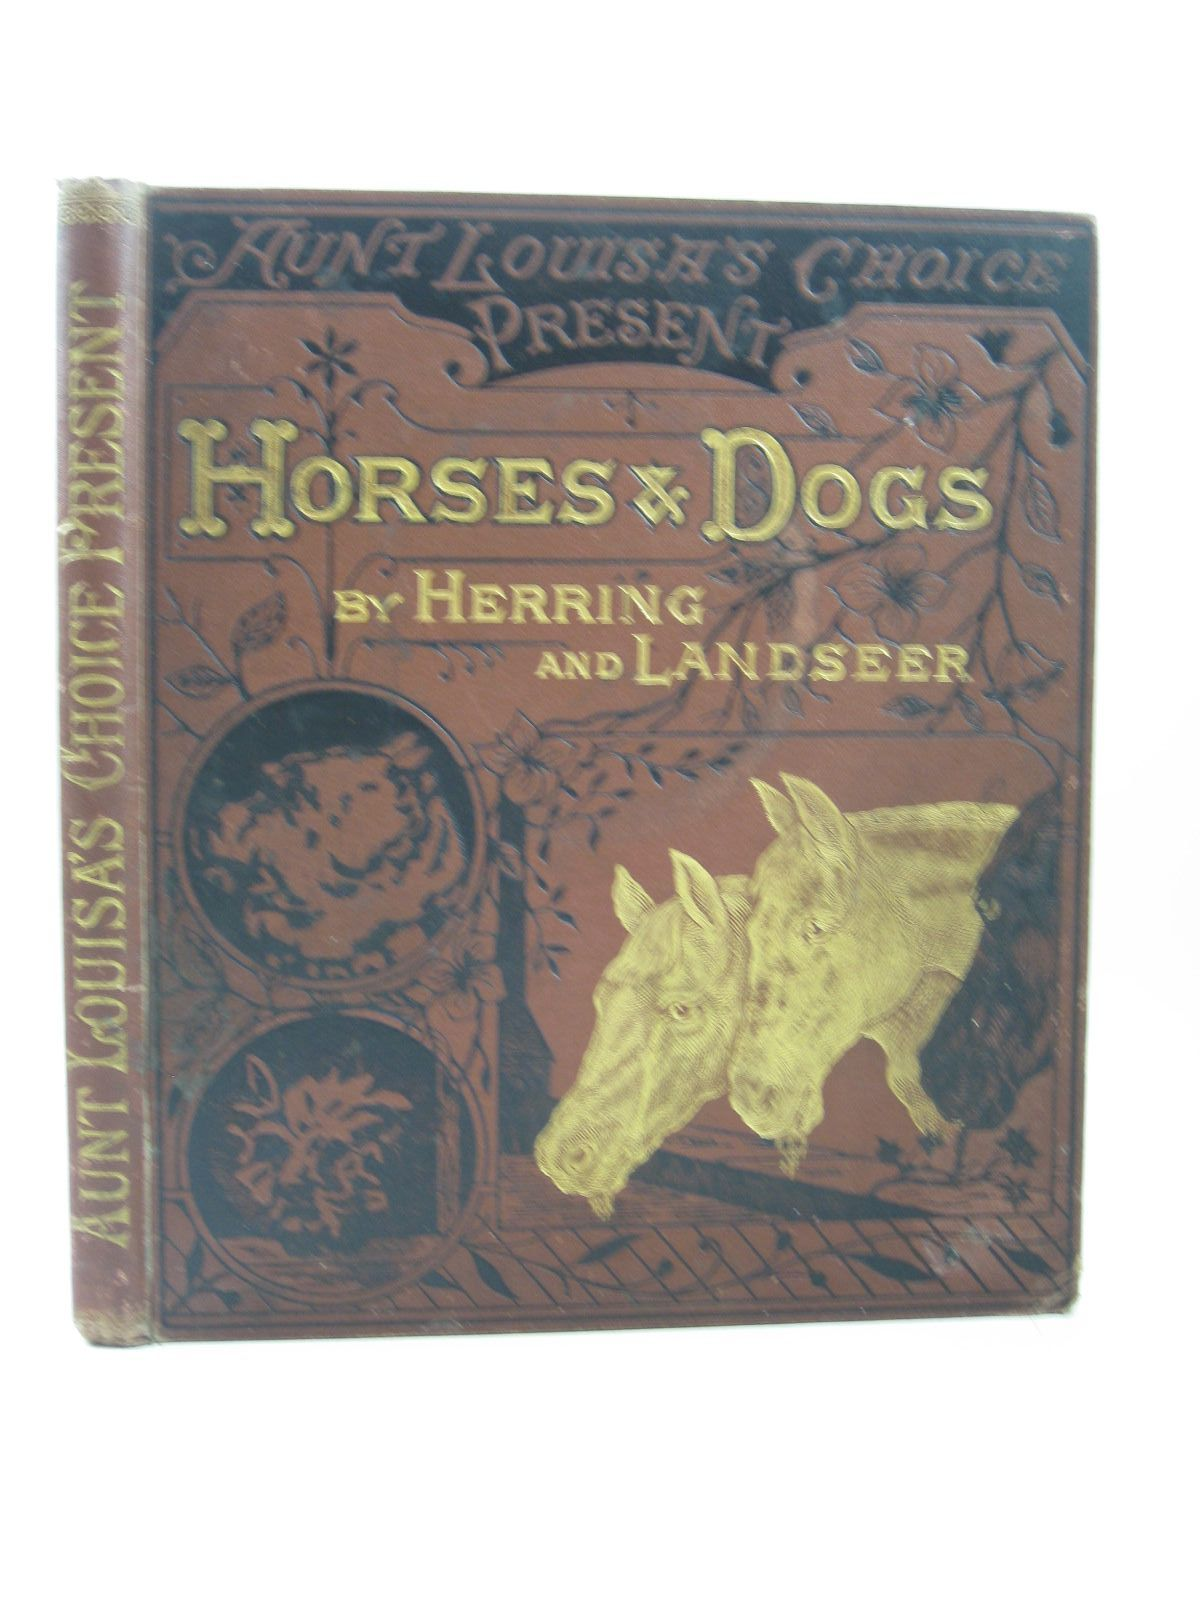 Photo of AUNT LOUISA'S CHOICE PRESENT HORSES AND DOGS written by Aunt Louisa, illustrated by Herring,<br />Landseer, published by Frederick Warne & Co. (STOCK CODE: 1314303)  for sale by Stella & Rose's Books